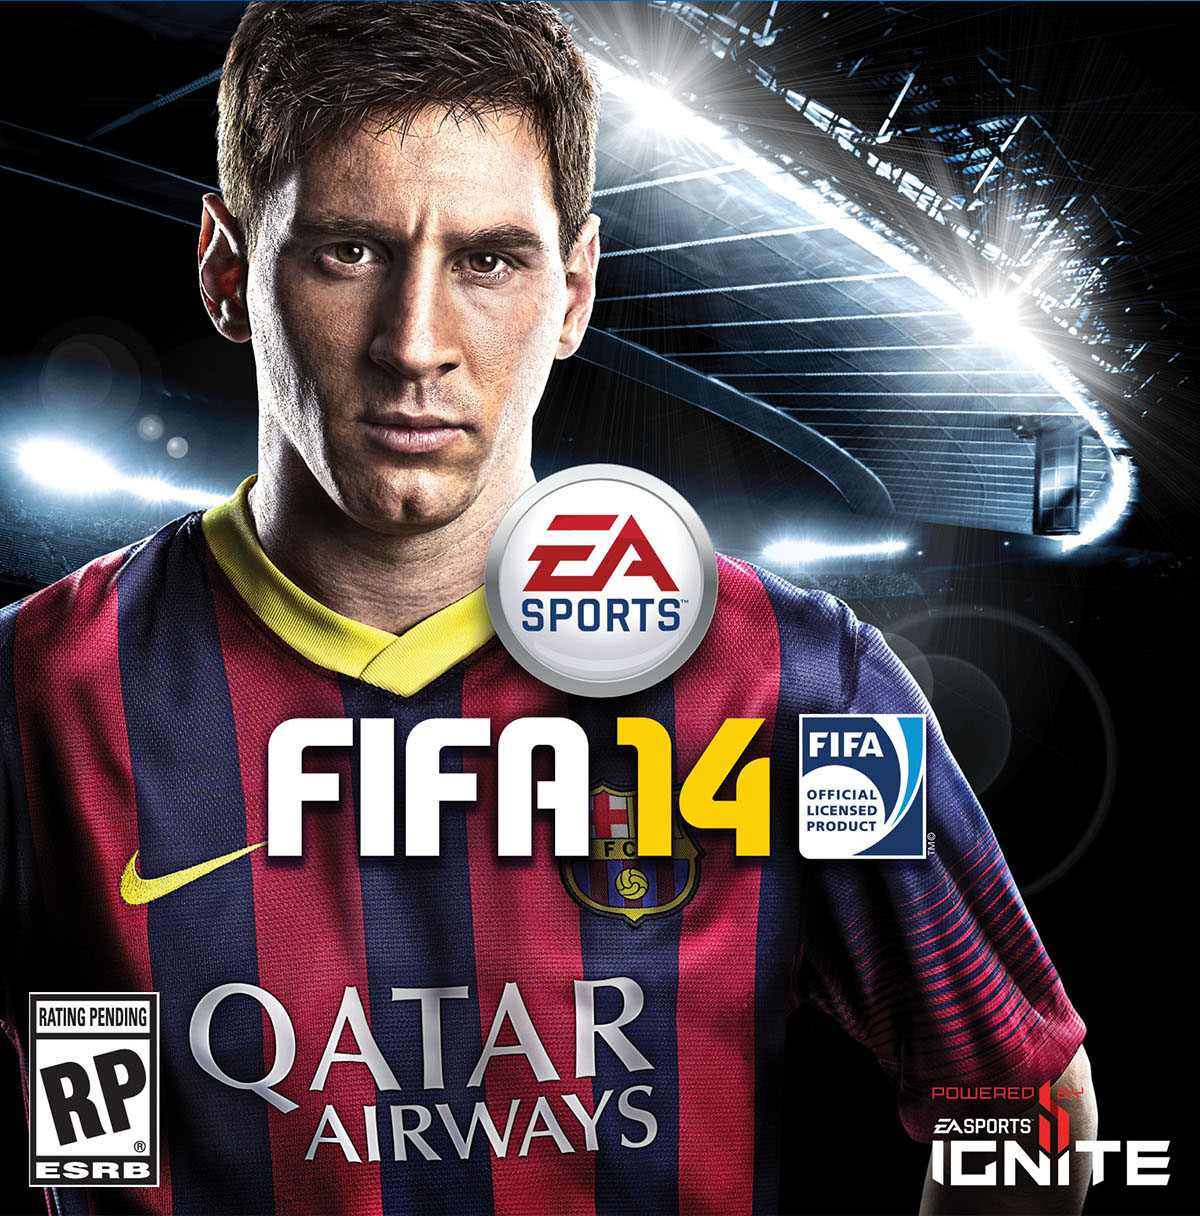 fifa 2014 game download pc